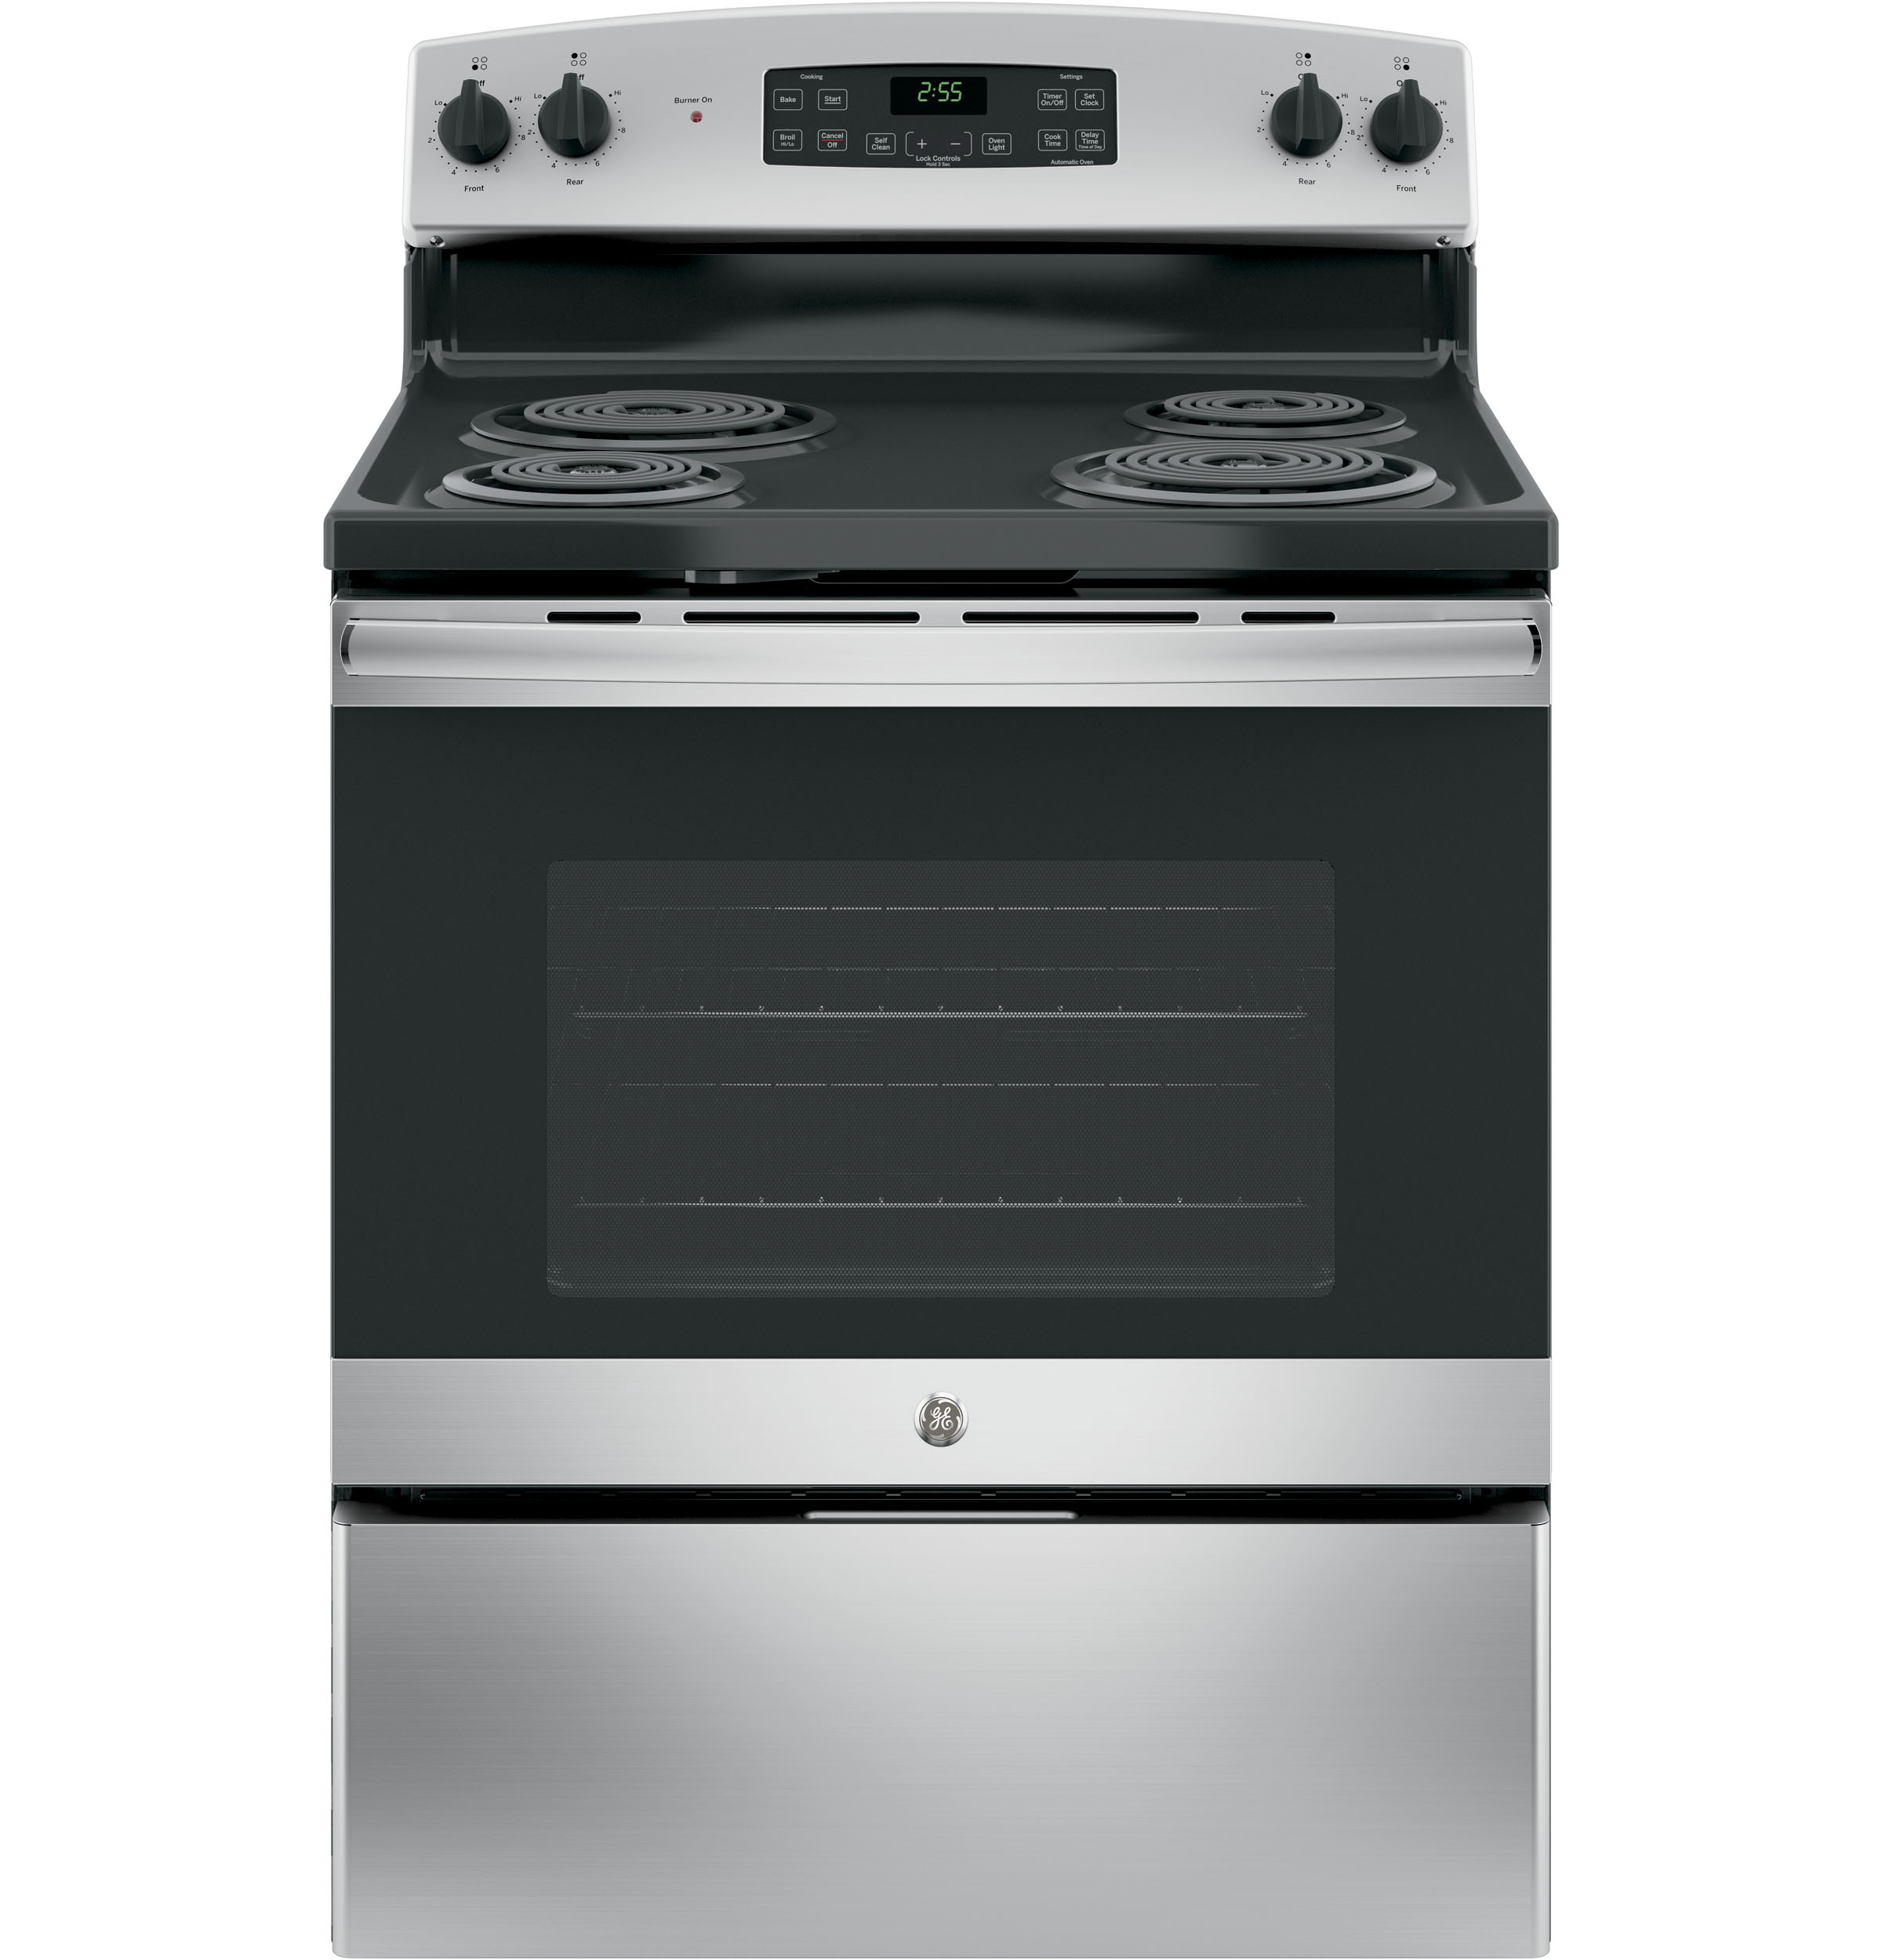 General Electric JB255RKSS 30 Inch Electric Range With 4